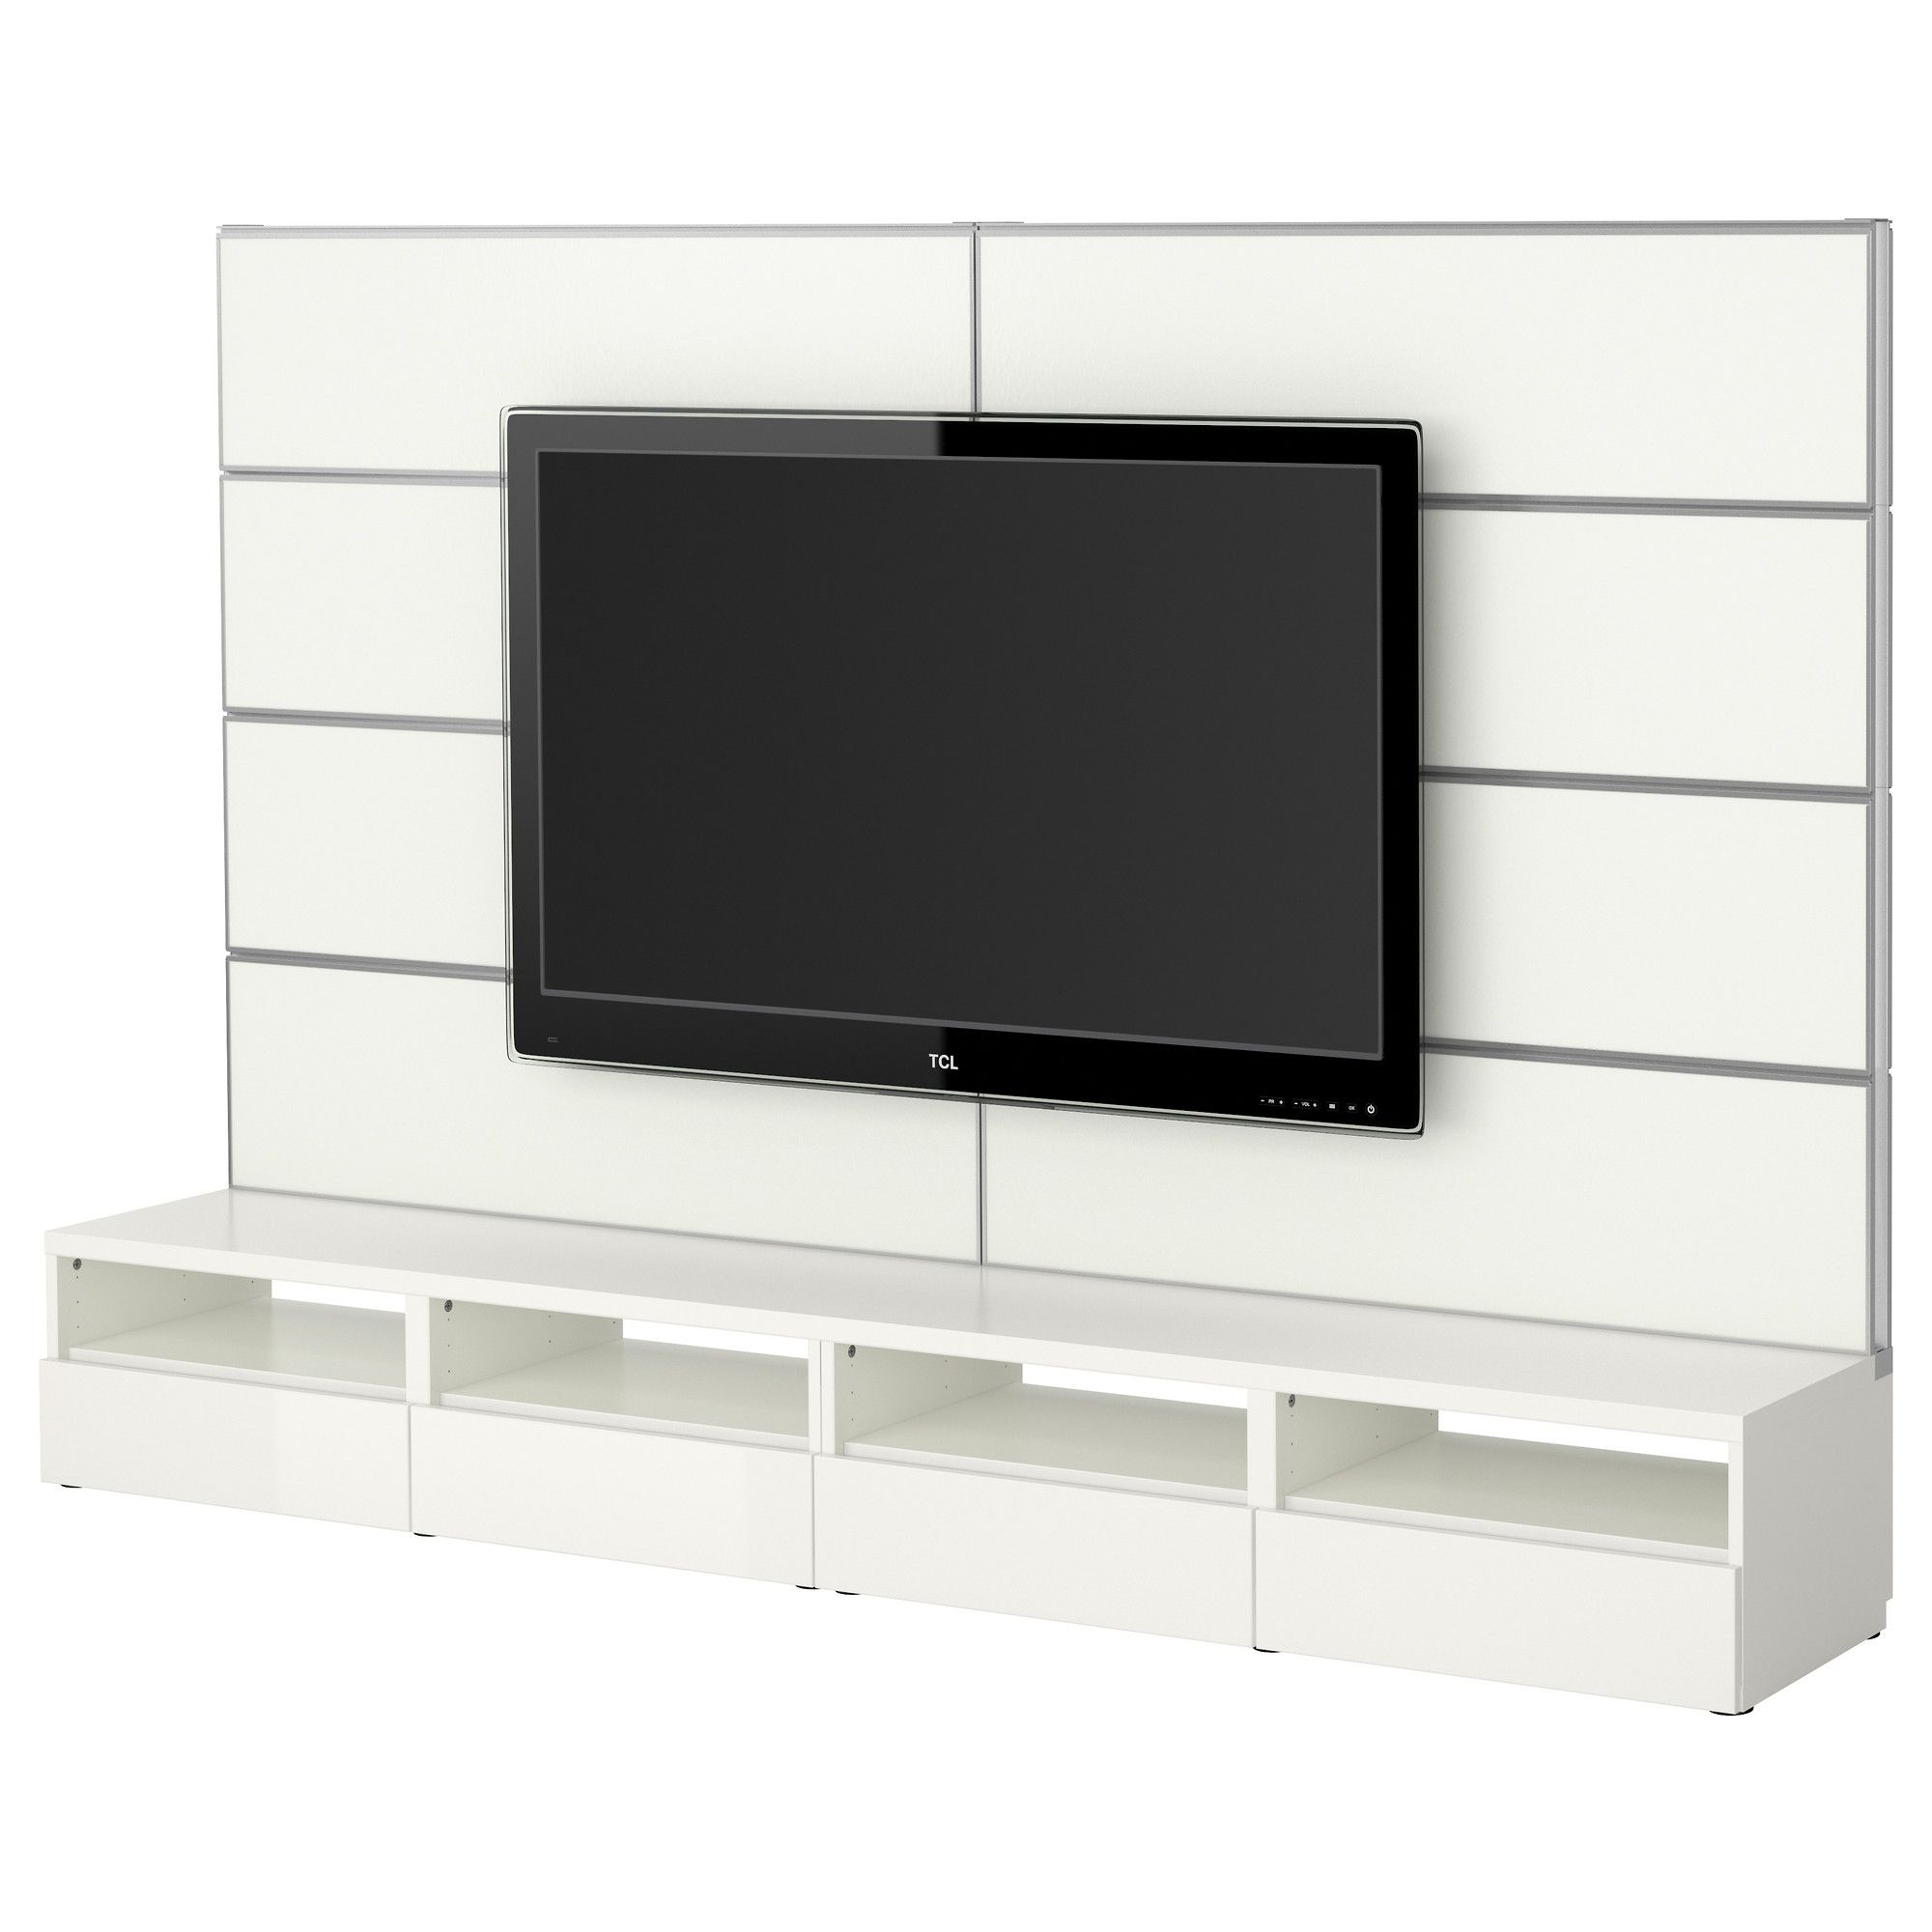 Best framst tv storage combination white ikea apt - Mueble tv ikea ...